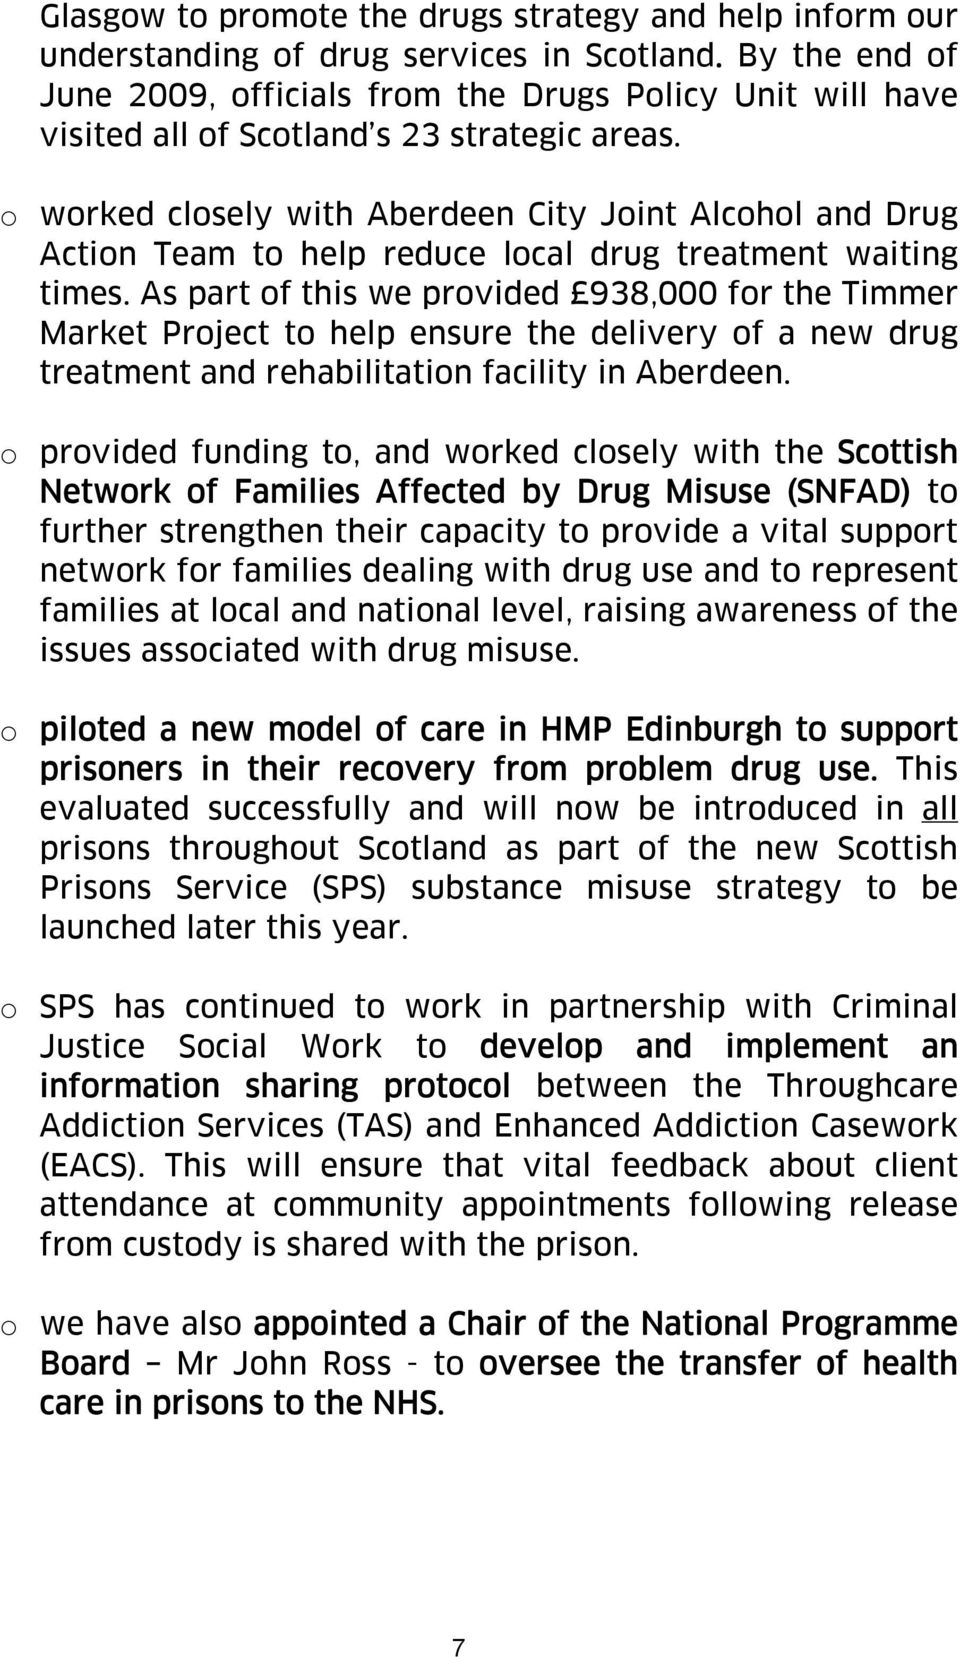 o worked closely with Aberdeen City Joint Alcohol and Drug Action Team to help reduce local drug treatment waiting times.